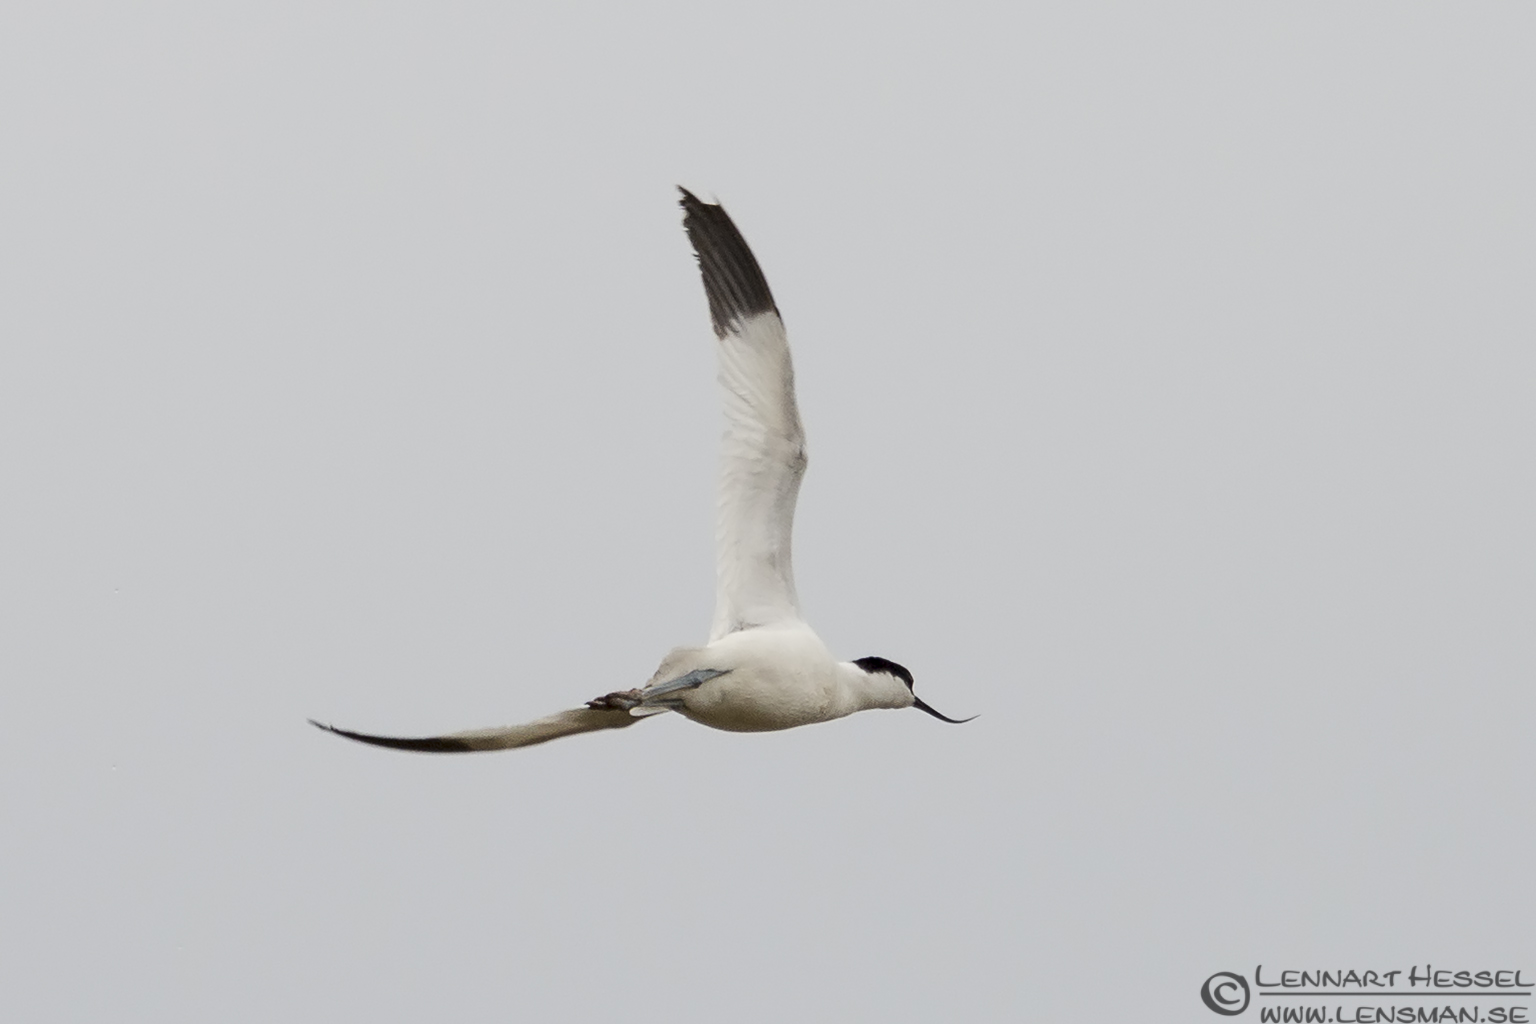 Pied Avocet bearded